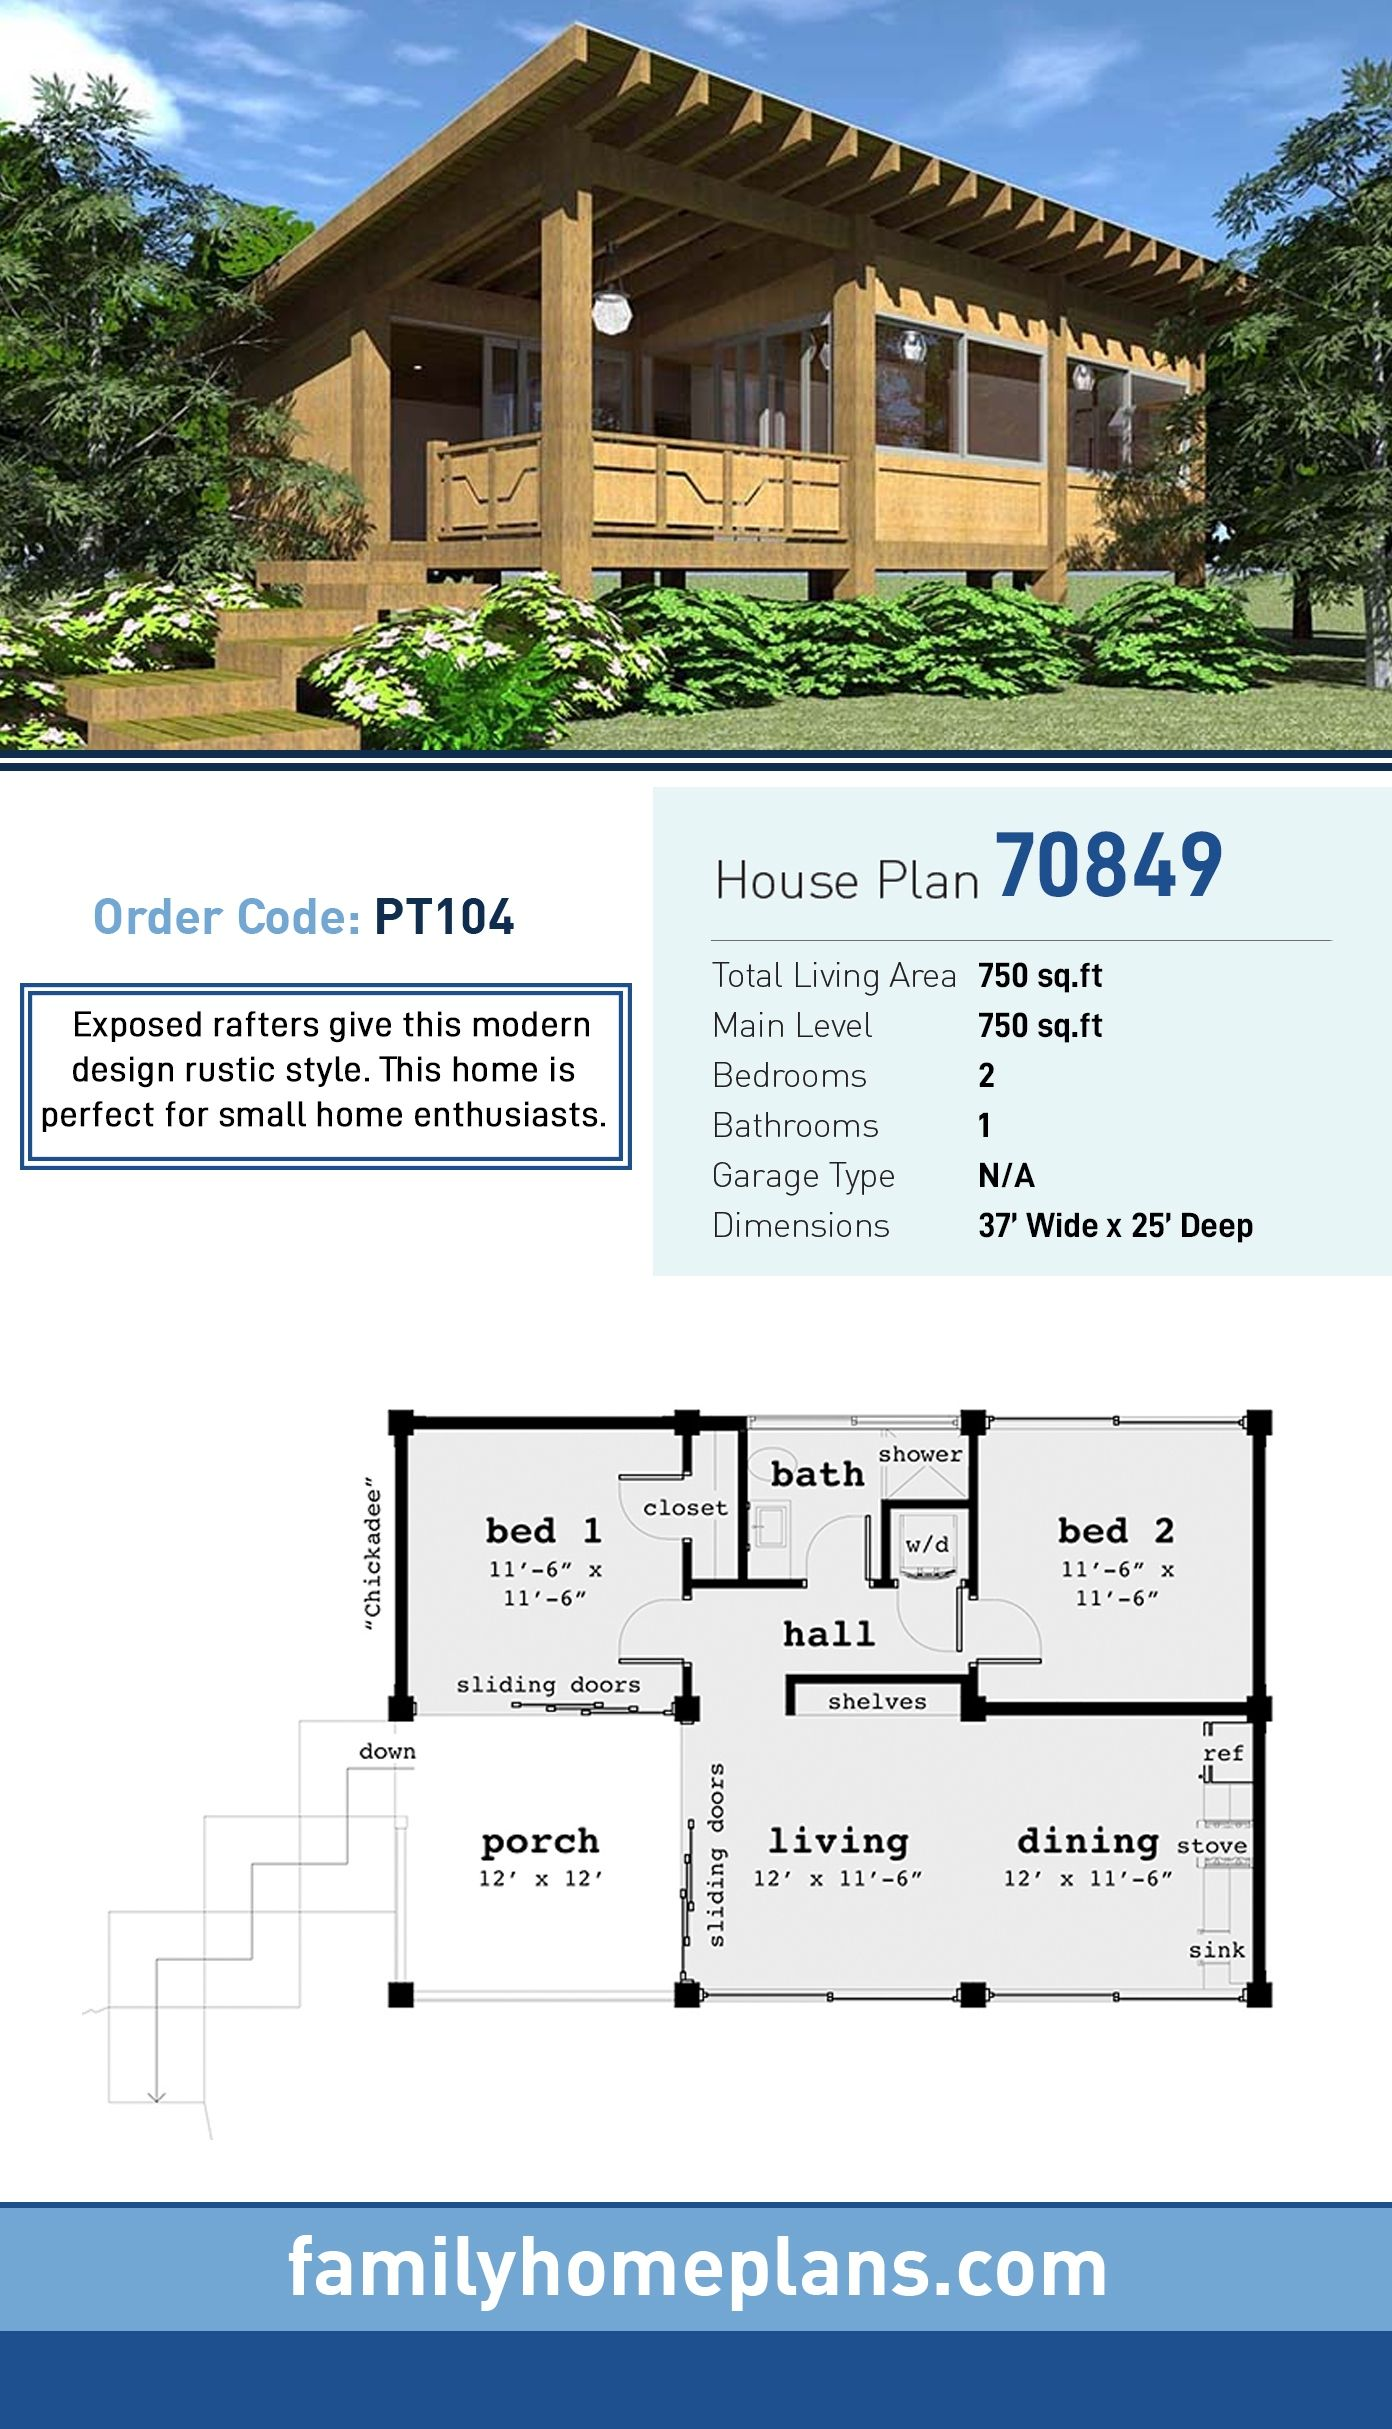 Ranch Style House Plan 70849 With 2 Bed 1 Bath Ranch Style House Plans House Plans Modern House Plans